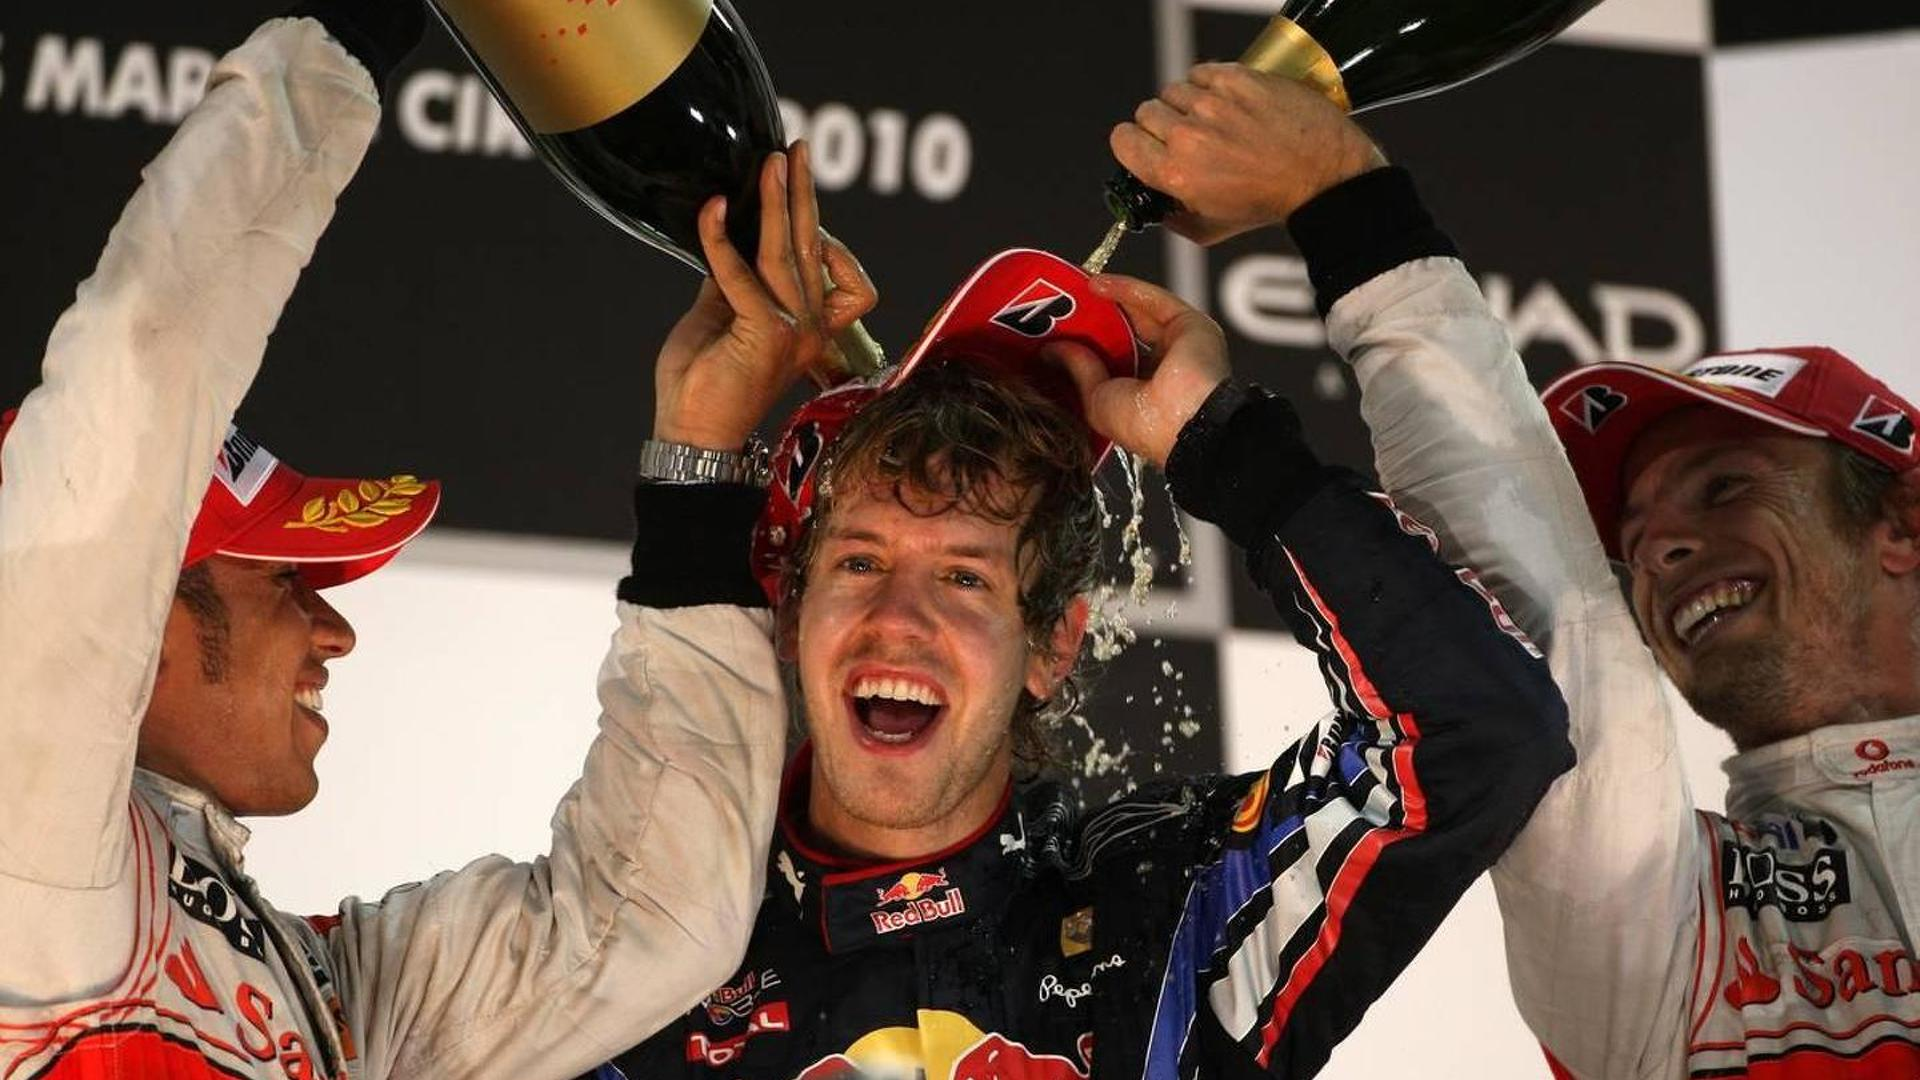 Formula 1 champion Vettel earns EUR 3m title bonus from Red Bull